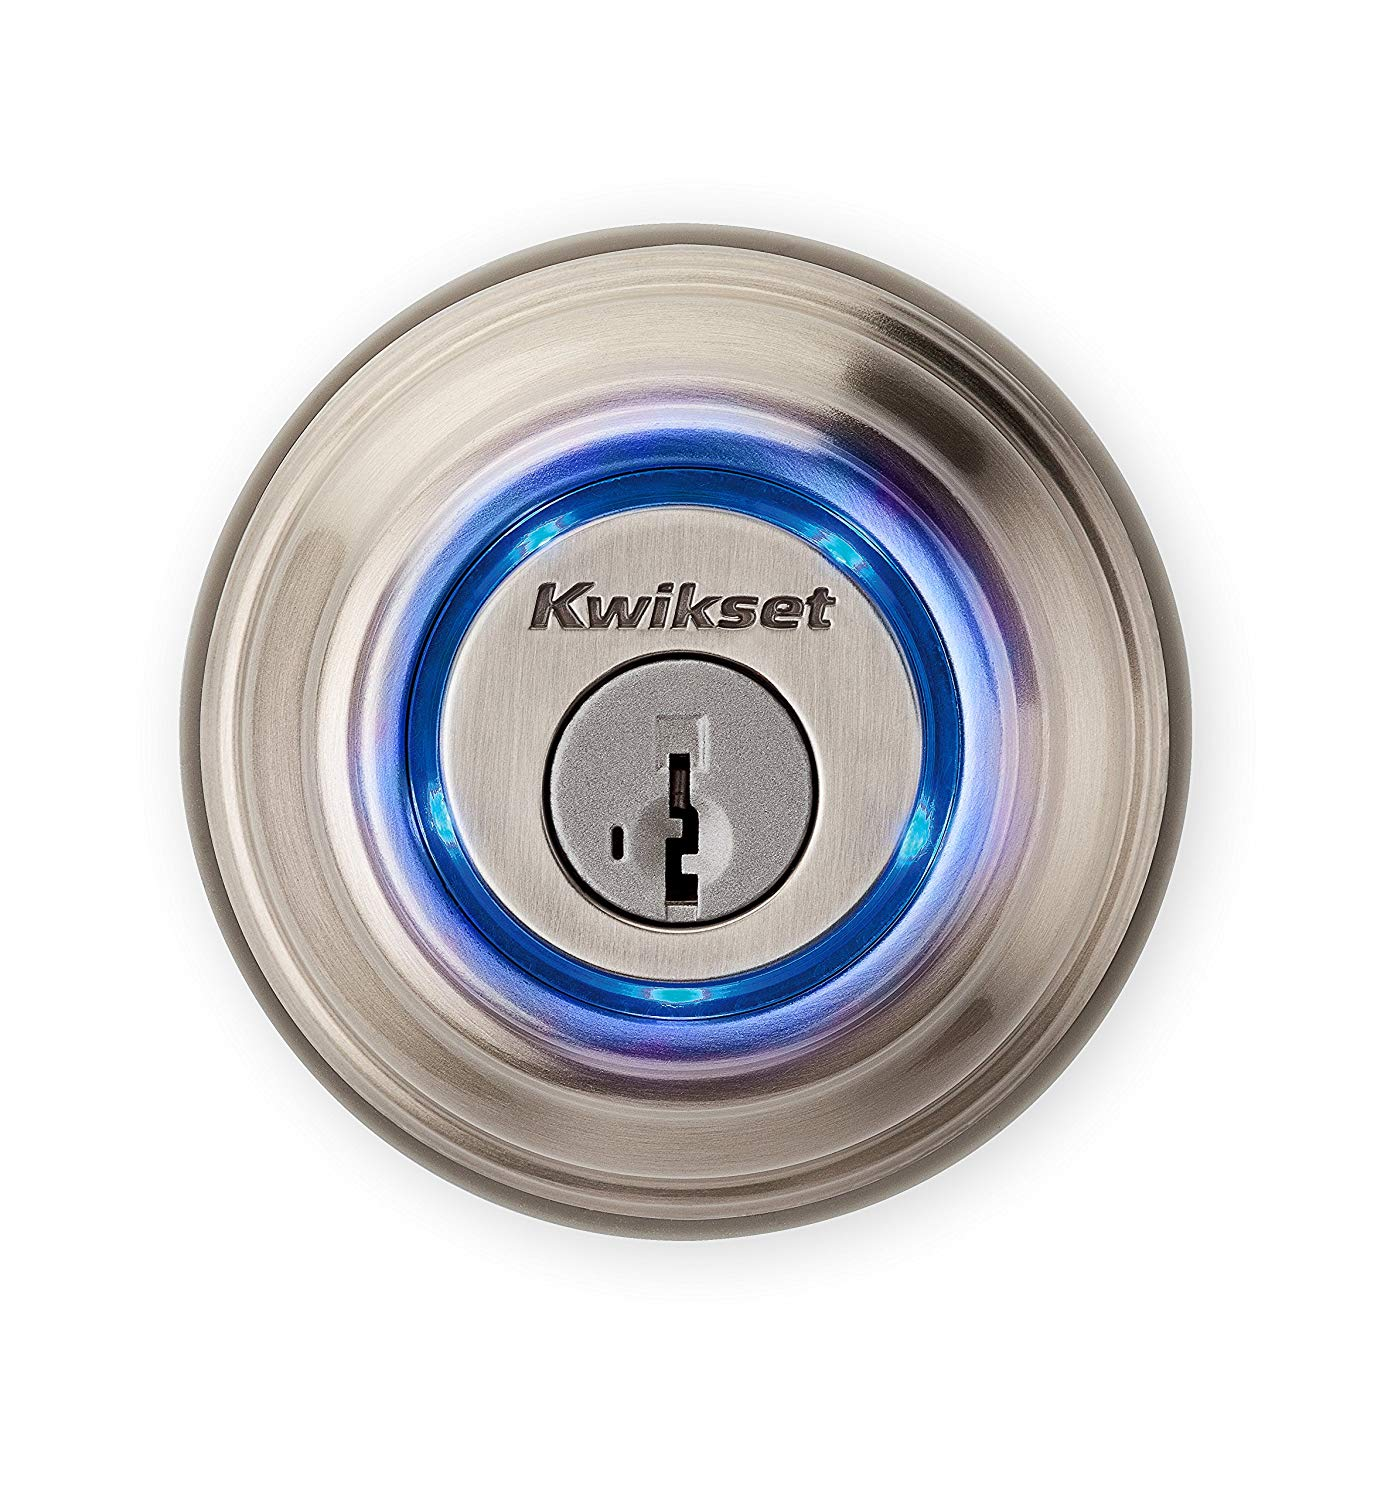 Kwikset Bluetooth Smart Lock